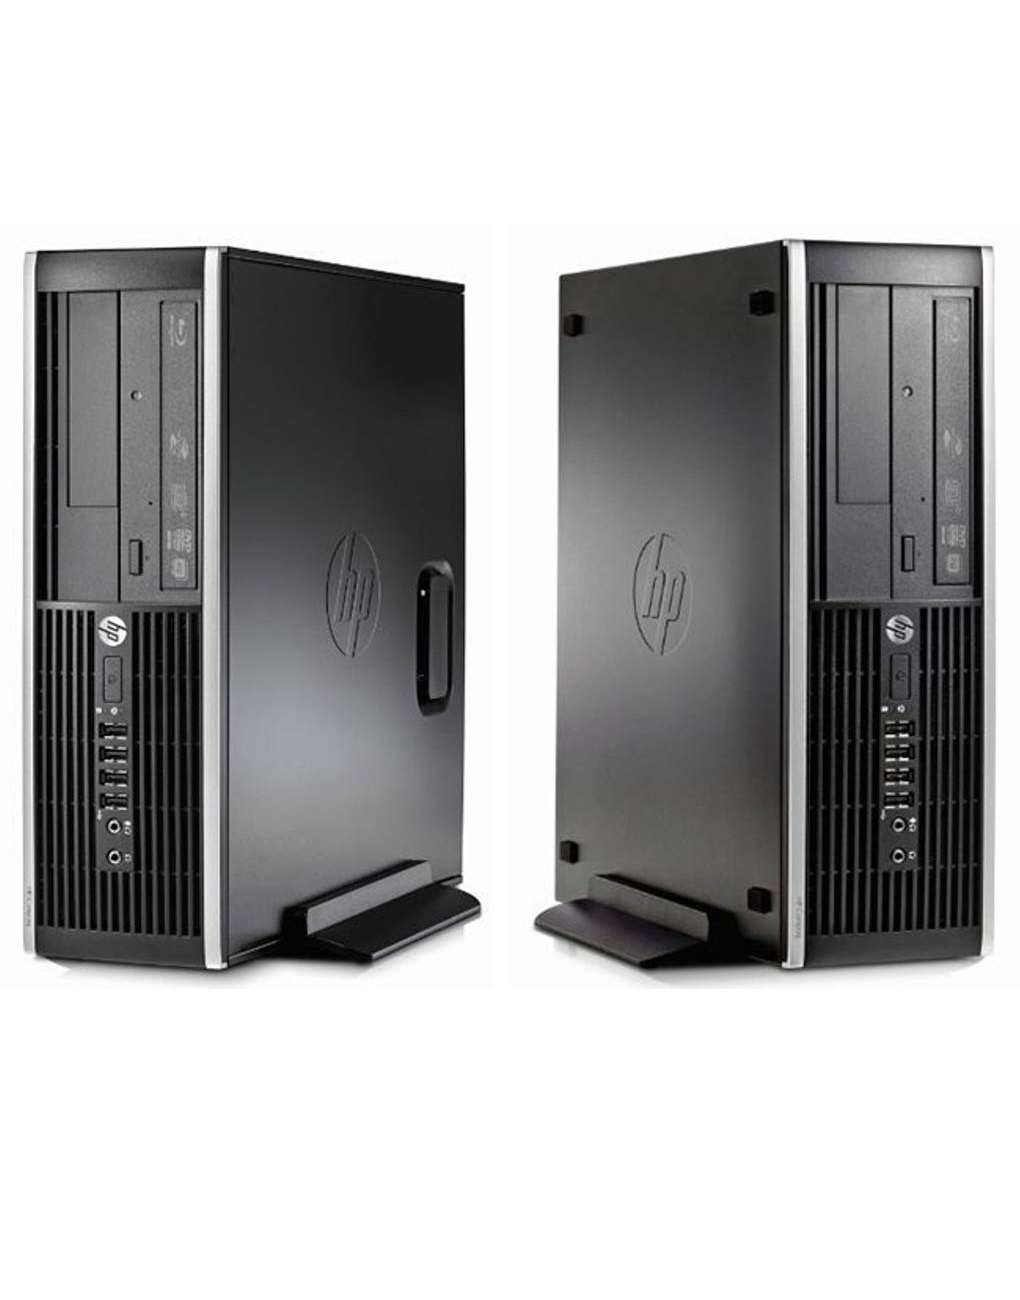 HP PRO 6005 E4Z31ET Desktop AMD® 3 2 GHz PC